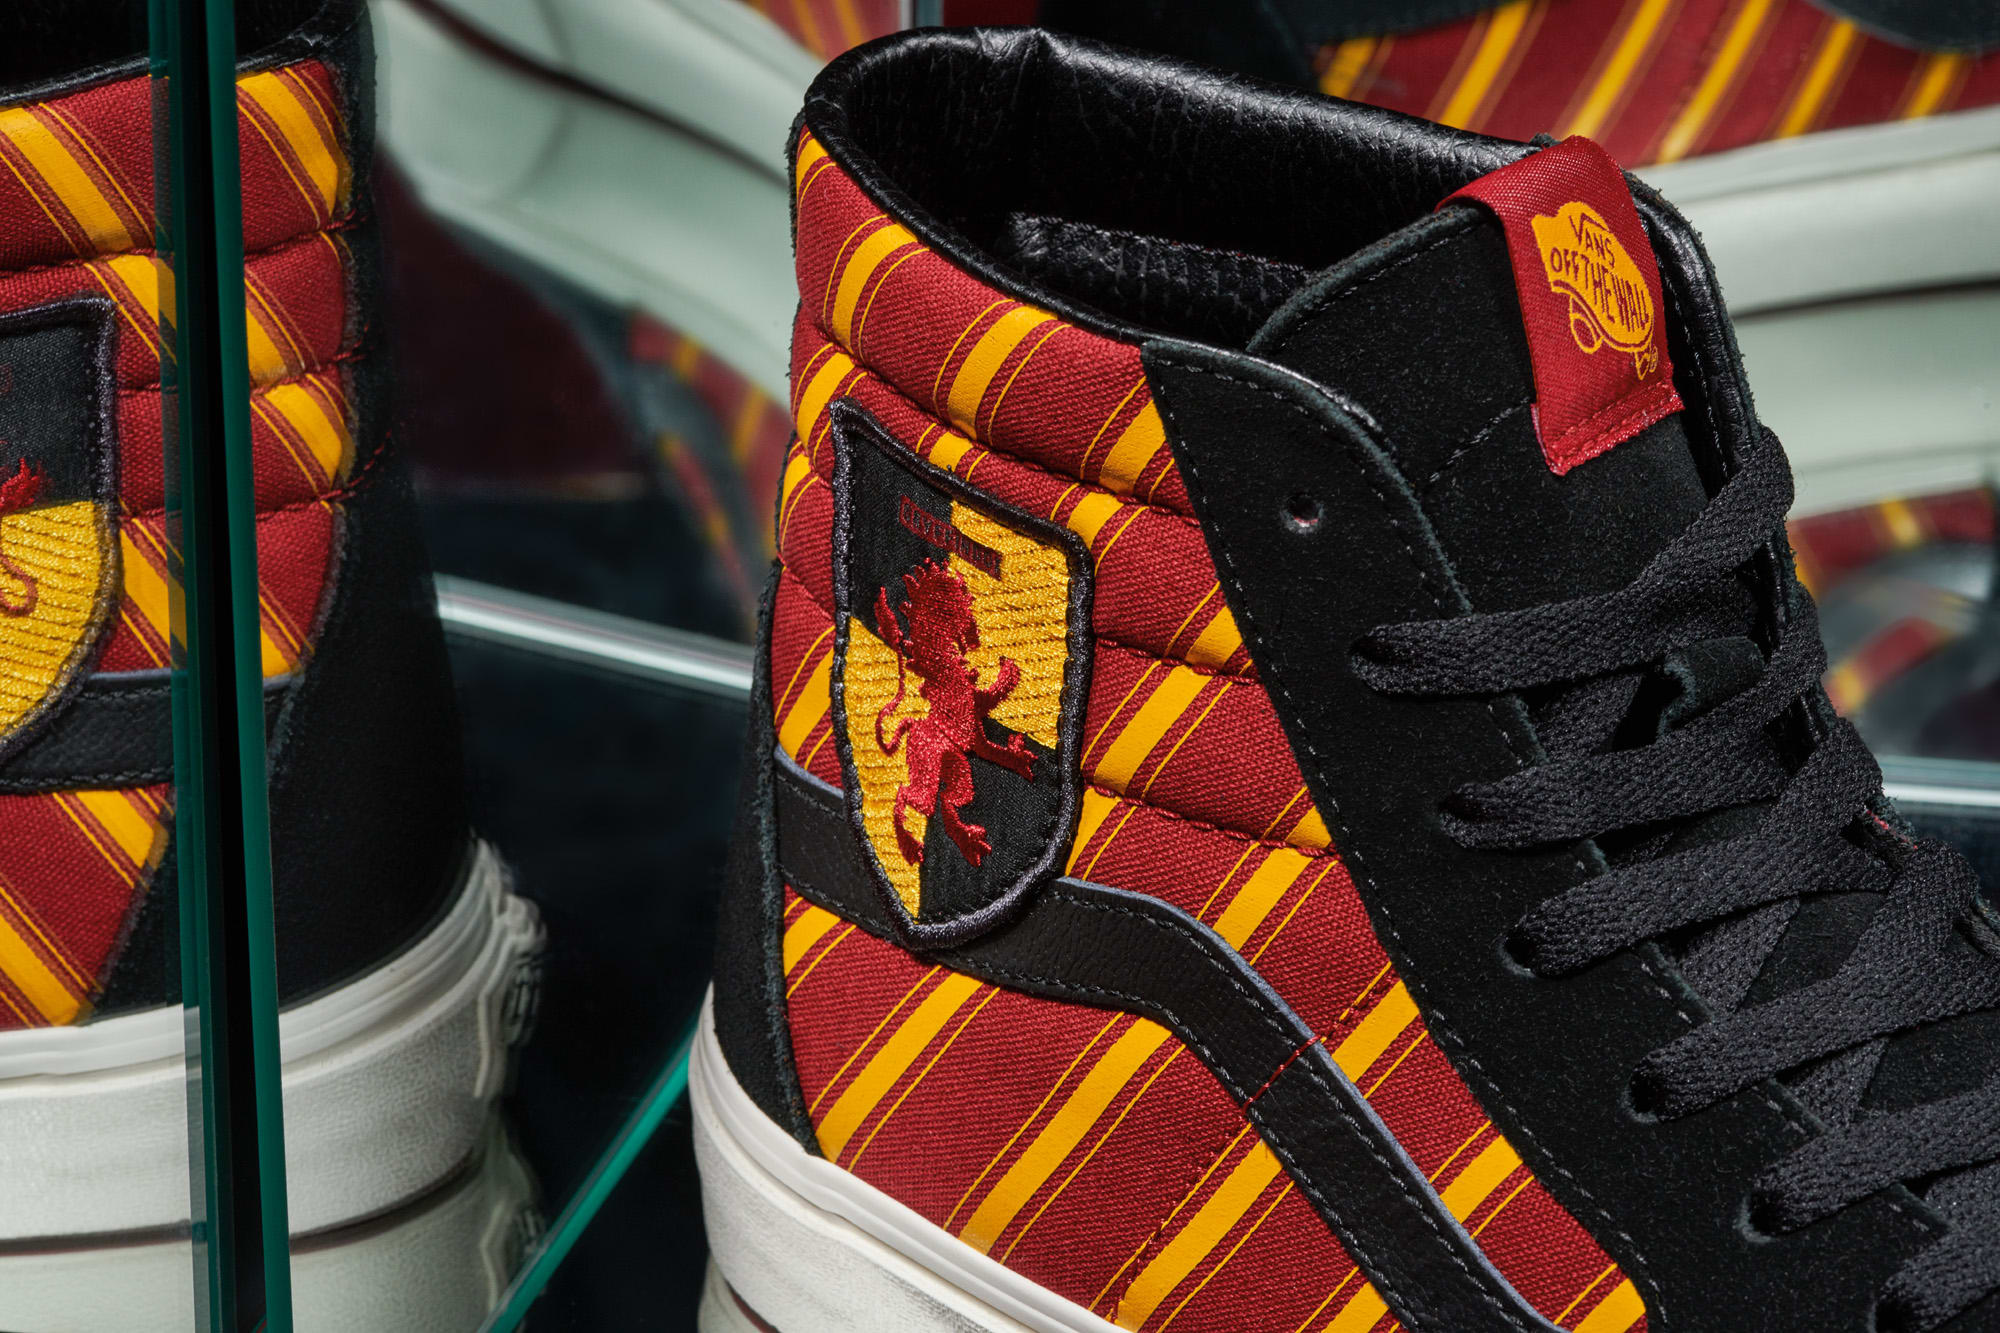 Harry Potter x Vans Sk8-Hi 'Gryffindor' (Detail)